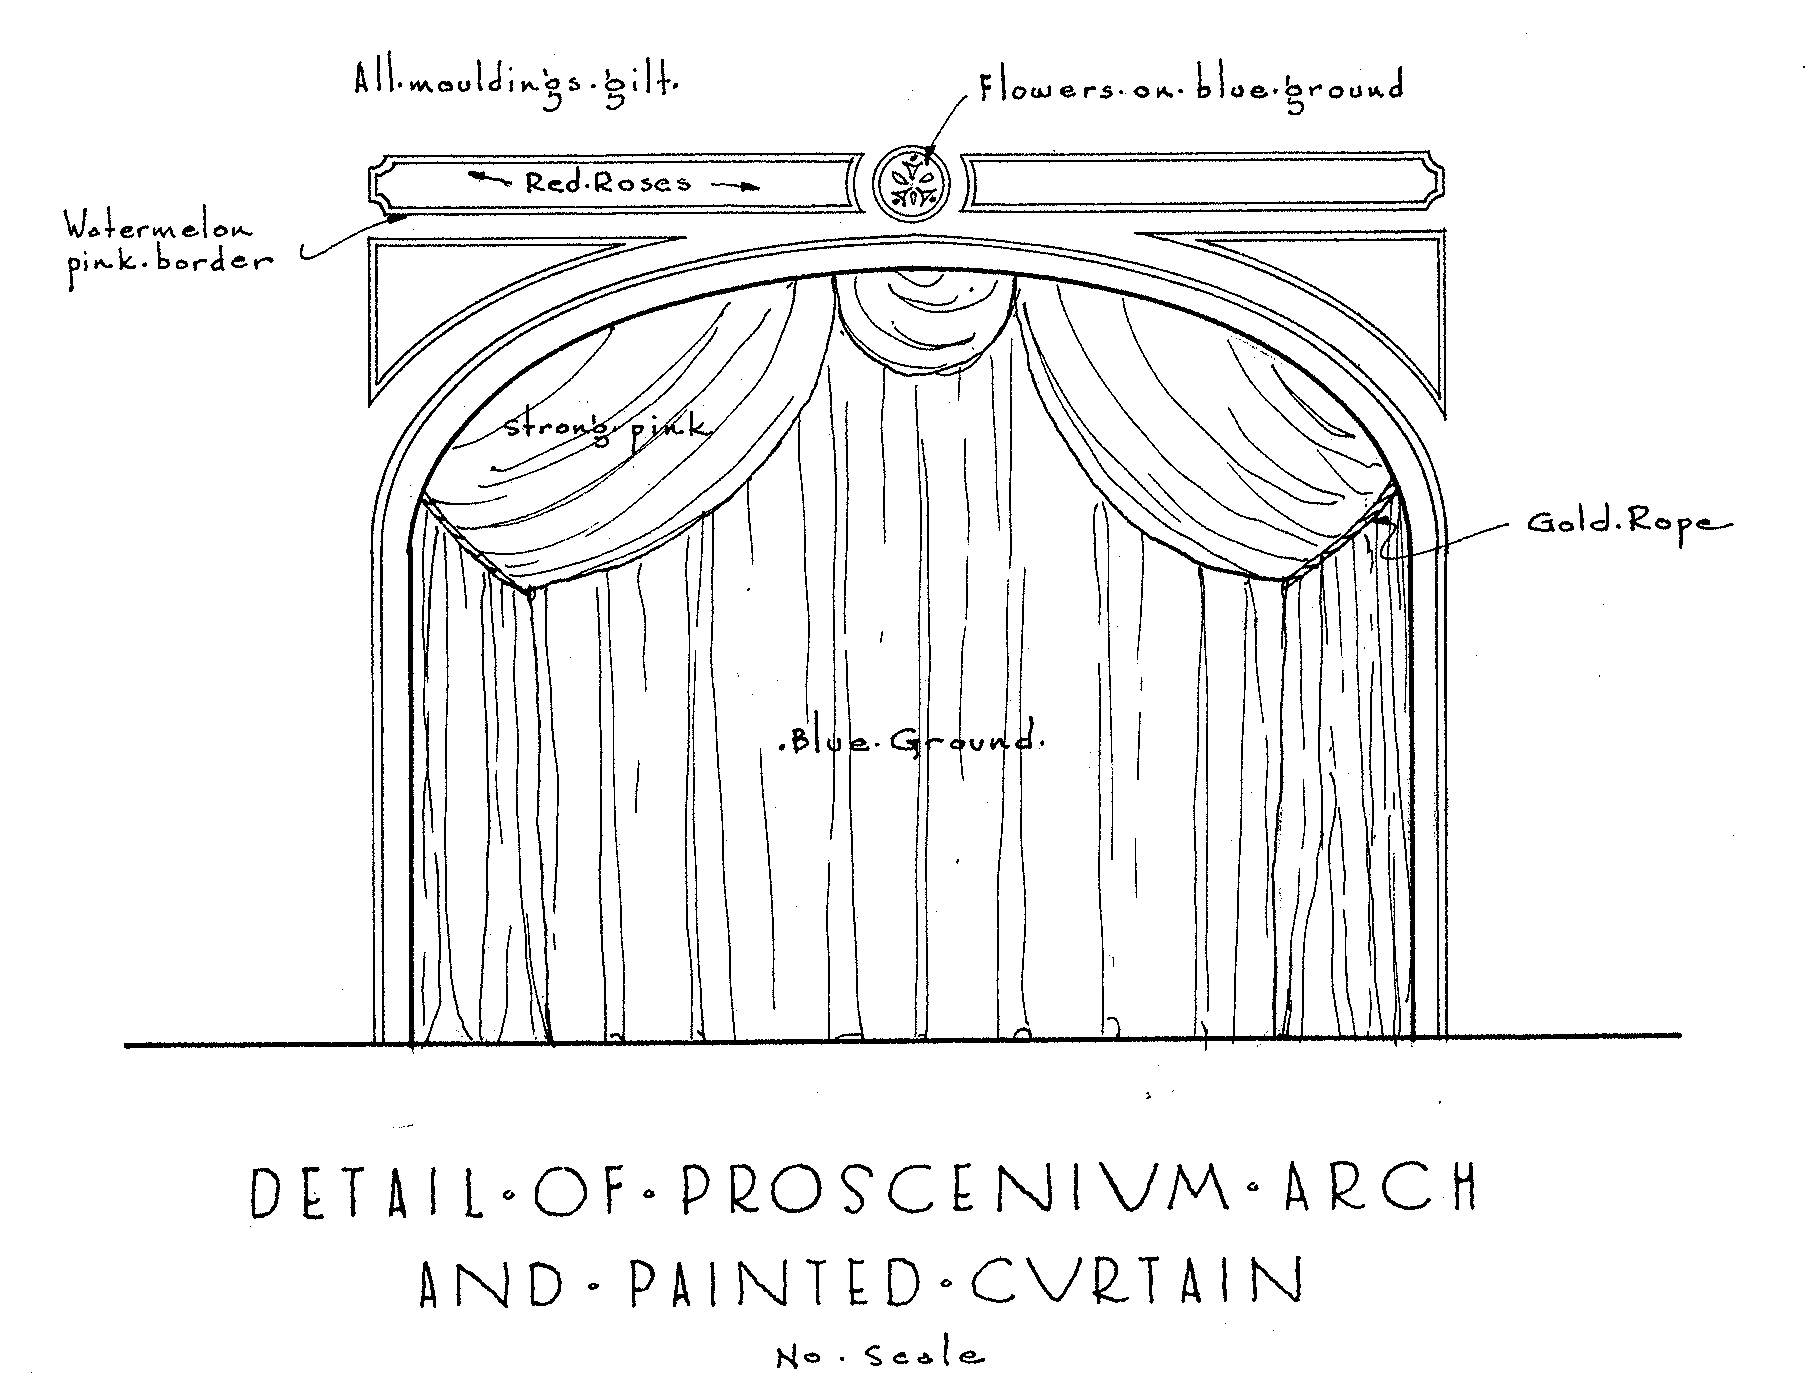 From Habs Diagrams Birdcage Stage Building In The Past